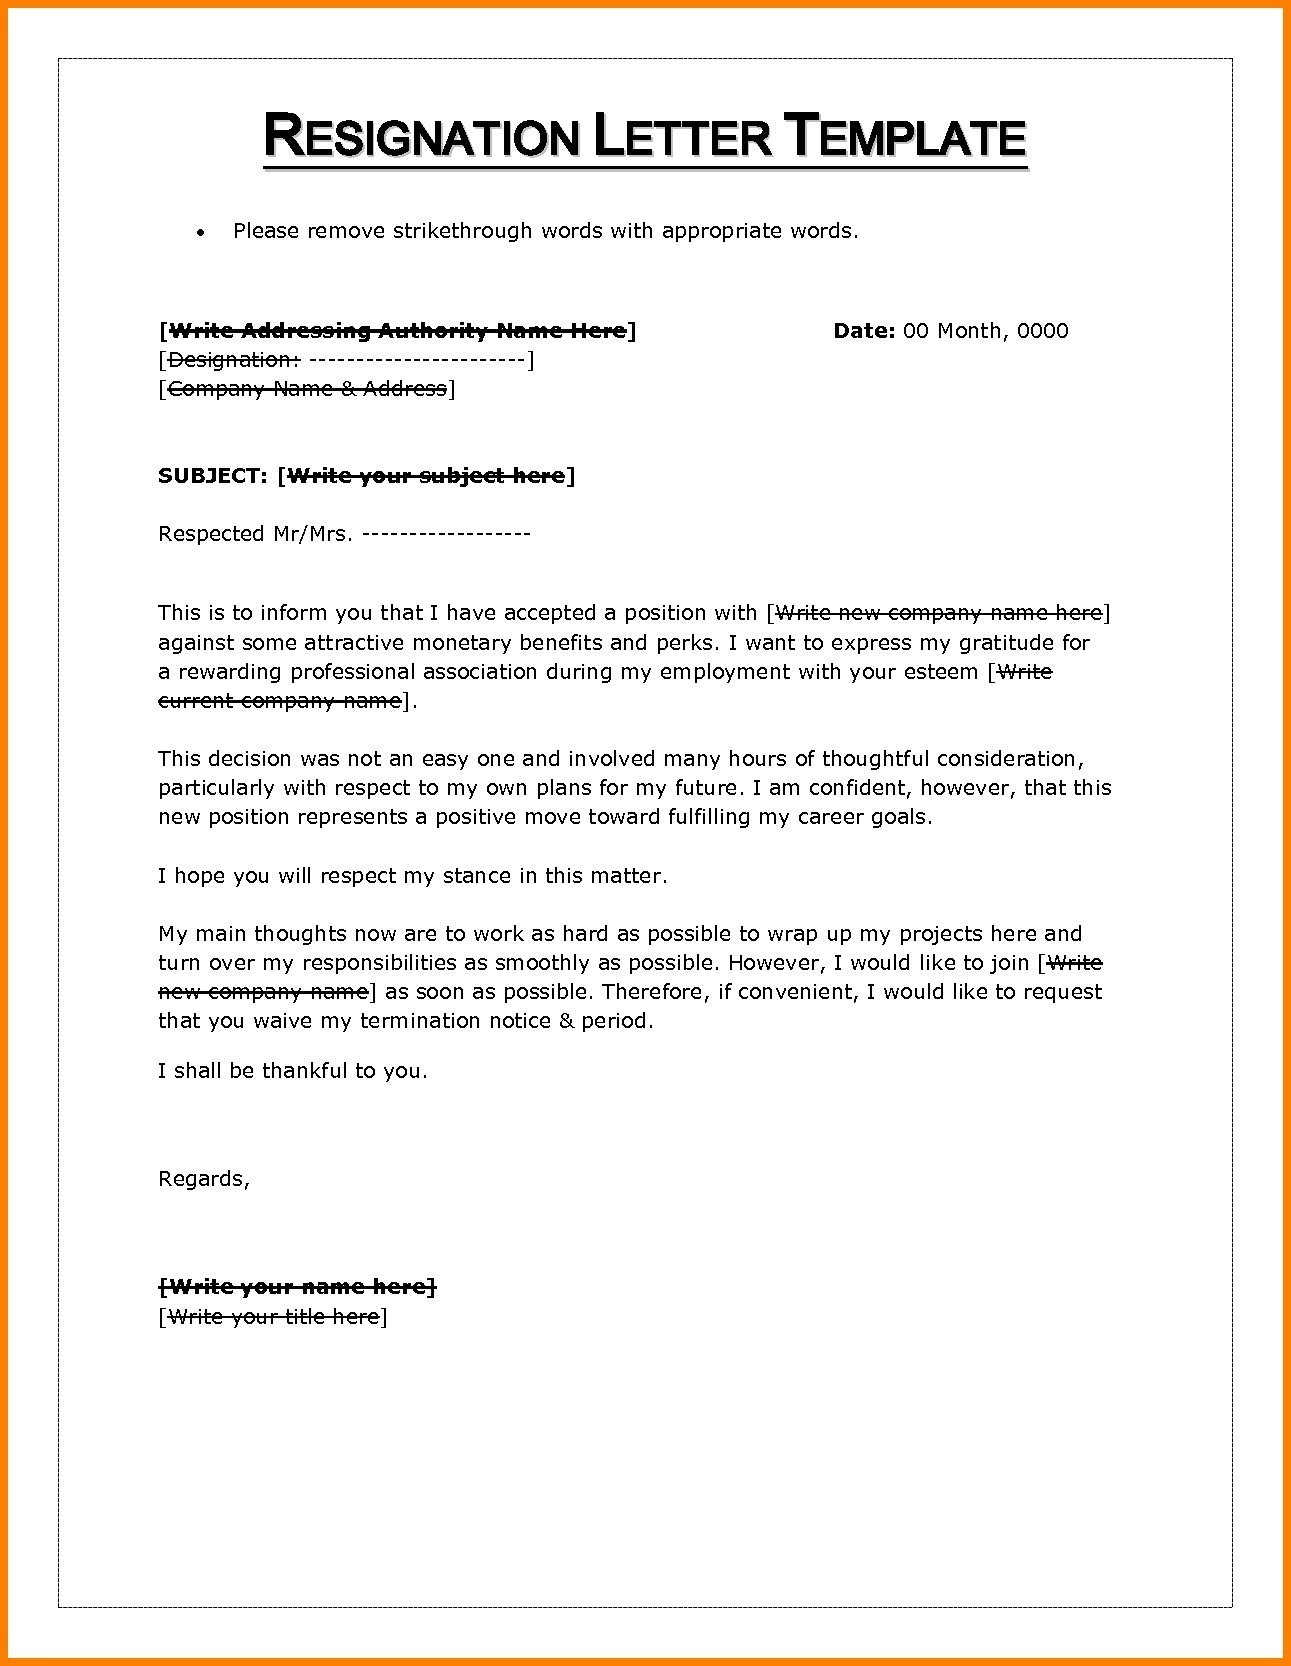 Resignation Letter Template Word Collection | Letter Cover Templates